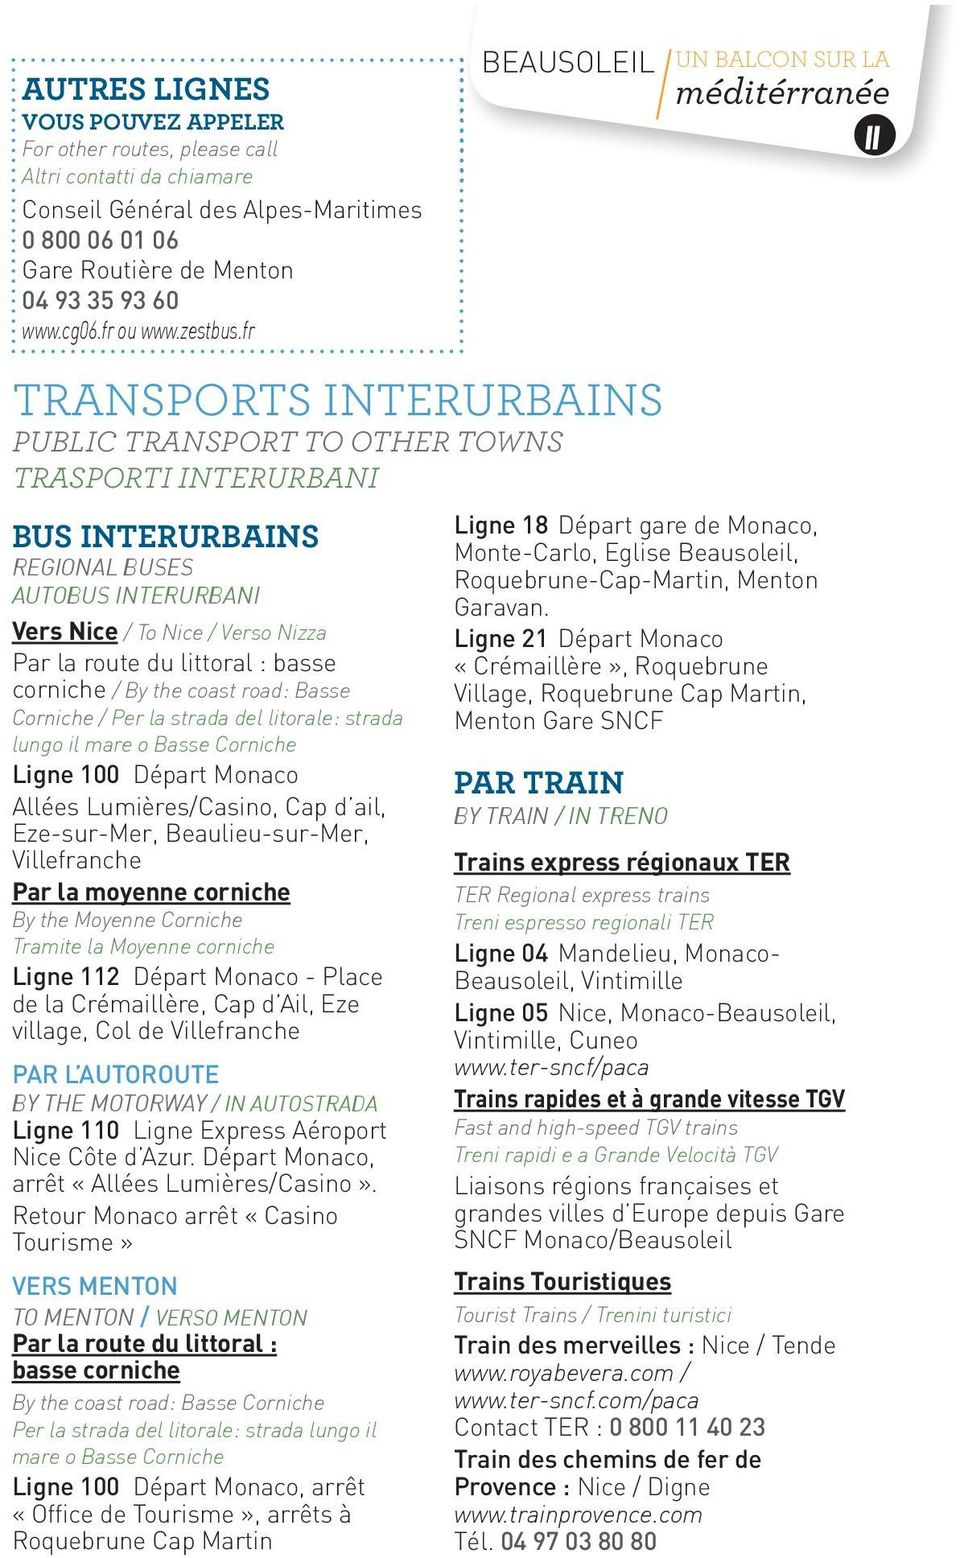 fr TRANSPORTS INTERURBAINS PUBLIC TRANSPORT TO OTHER TOWNS TRASPORTI INTERURBANI BUS INTERURBAINS REGIONAL BUSES AUTOBUS INTERURBANI Vers Nice / To Nice / Verso Nizza Par la route du littoral : basse